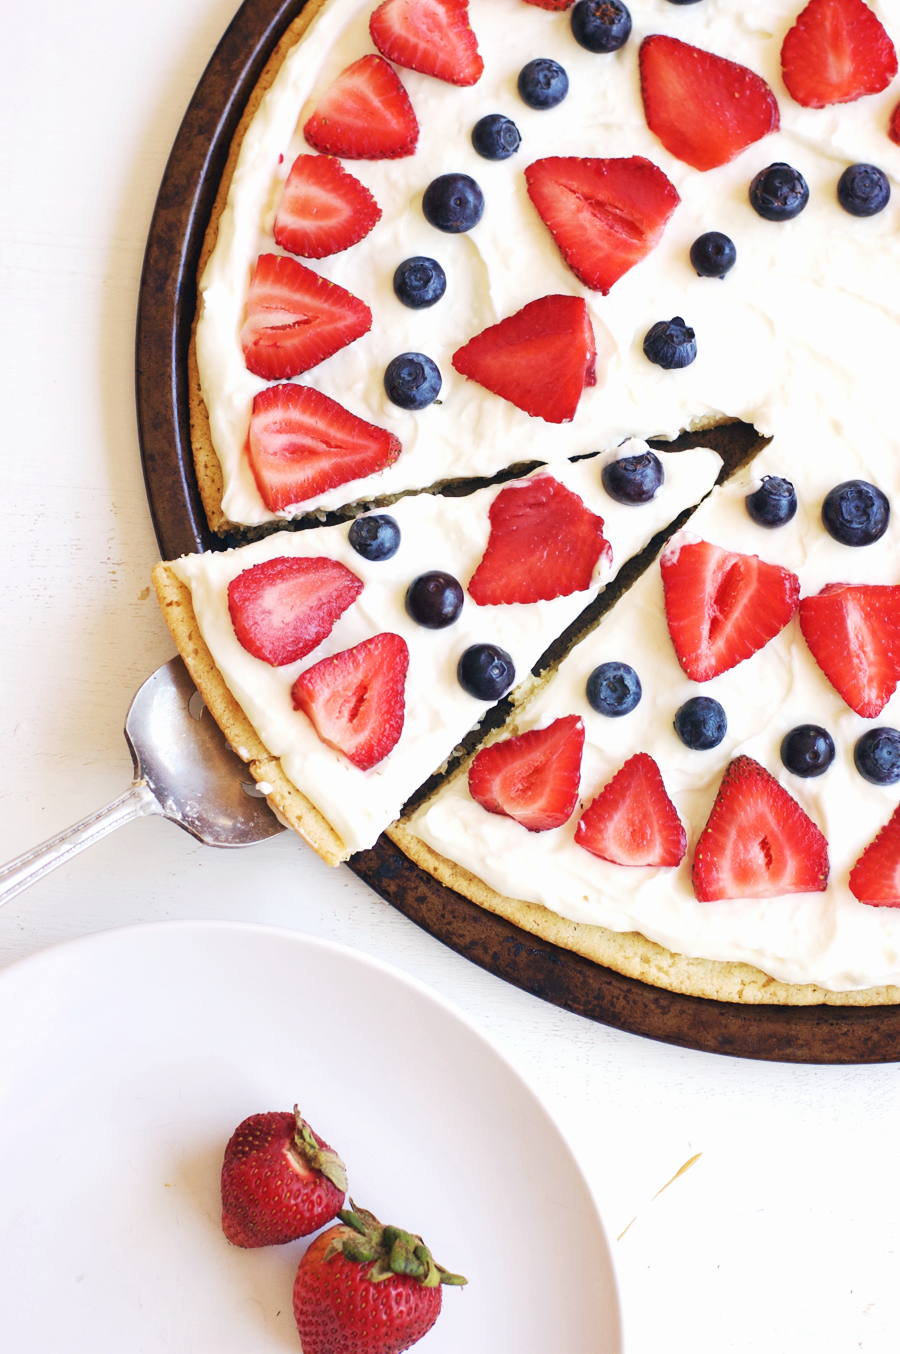 http://www.thebutterhalf.com/4th-of-july-berry-dessert-pizza/?utm_medium=social&utm_source=pinterest&utm_campaign=tailwind_tribes&utm_content=tribes